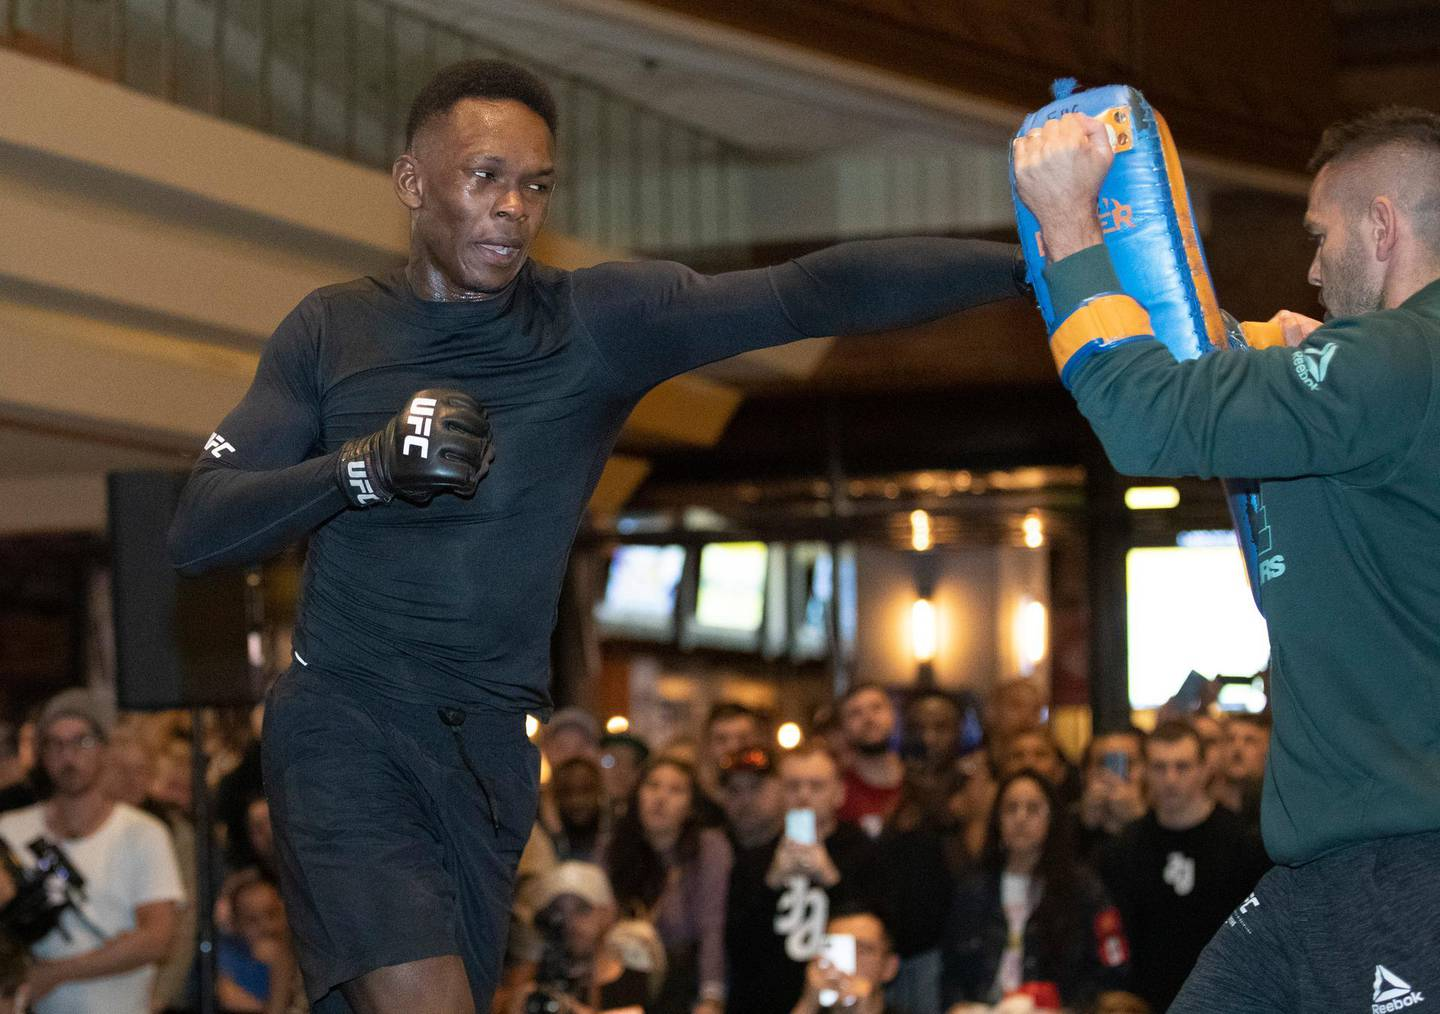 UFC middleweight champion Israel Adesanya, left, of Nigeria, works on his timing with coach Andrei Paulet during UFC 248 open workouts, in Las Vegas on Wednesday, March 4, 2020. (Steve Marcus/Las Vegas Sun via AP)